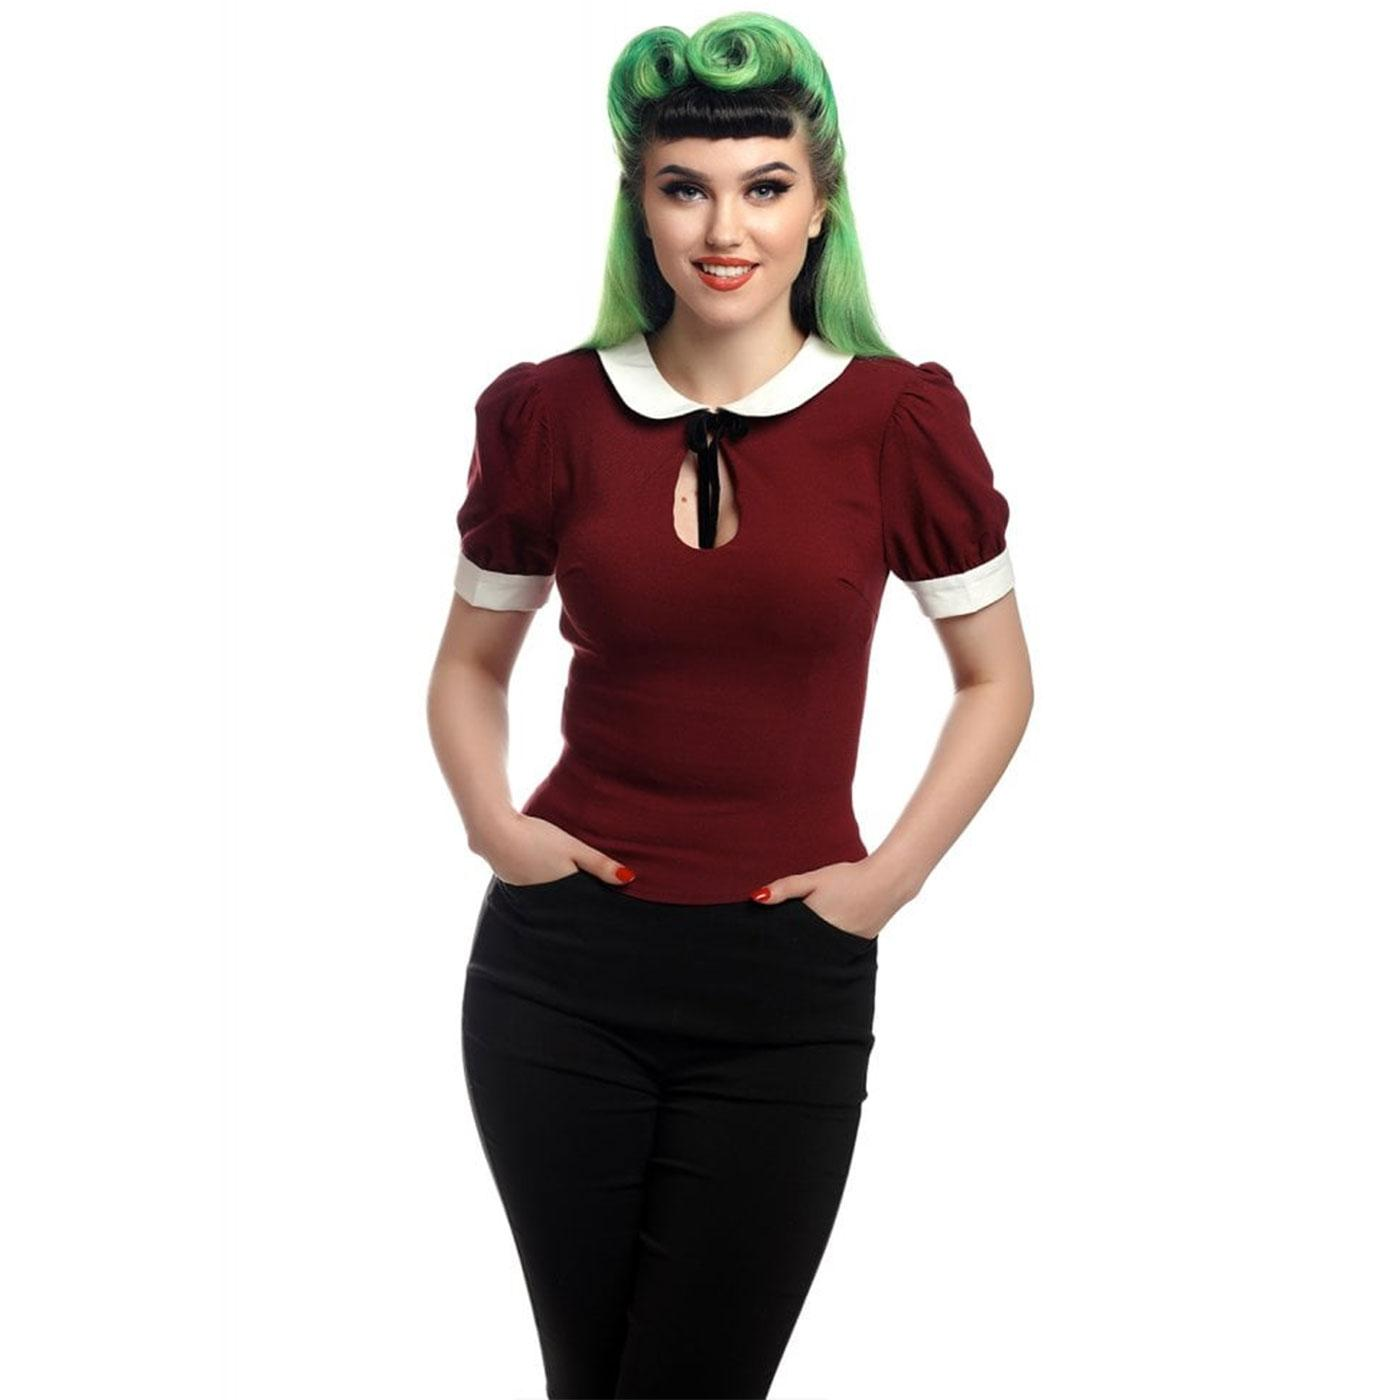 Khloe COLLECTIF Retro Keyhole Peter Pan Top in Red